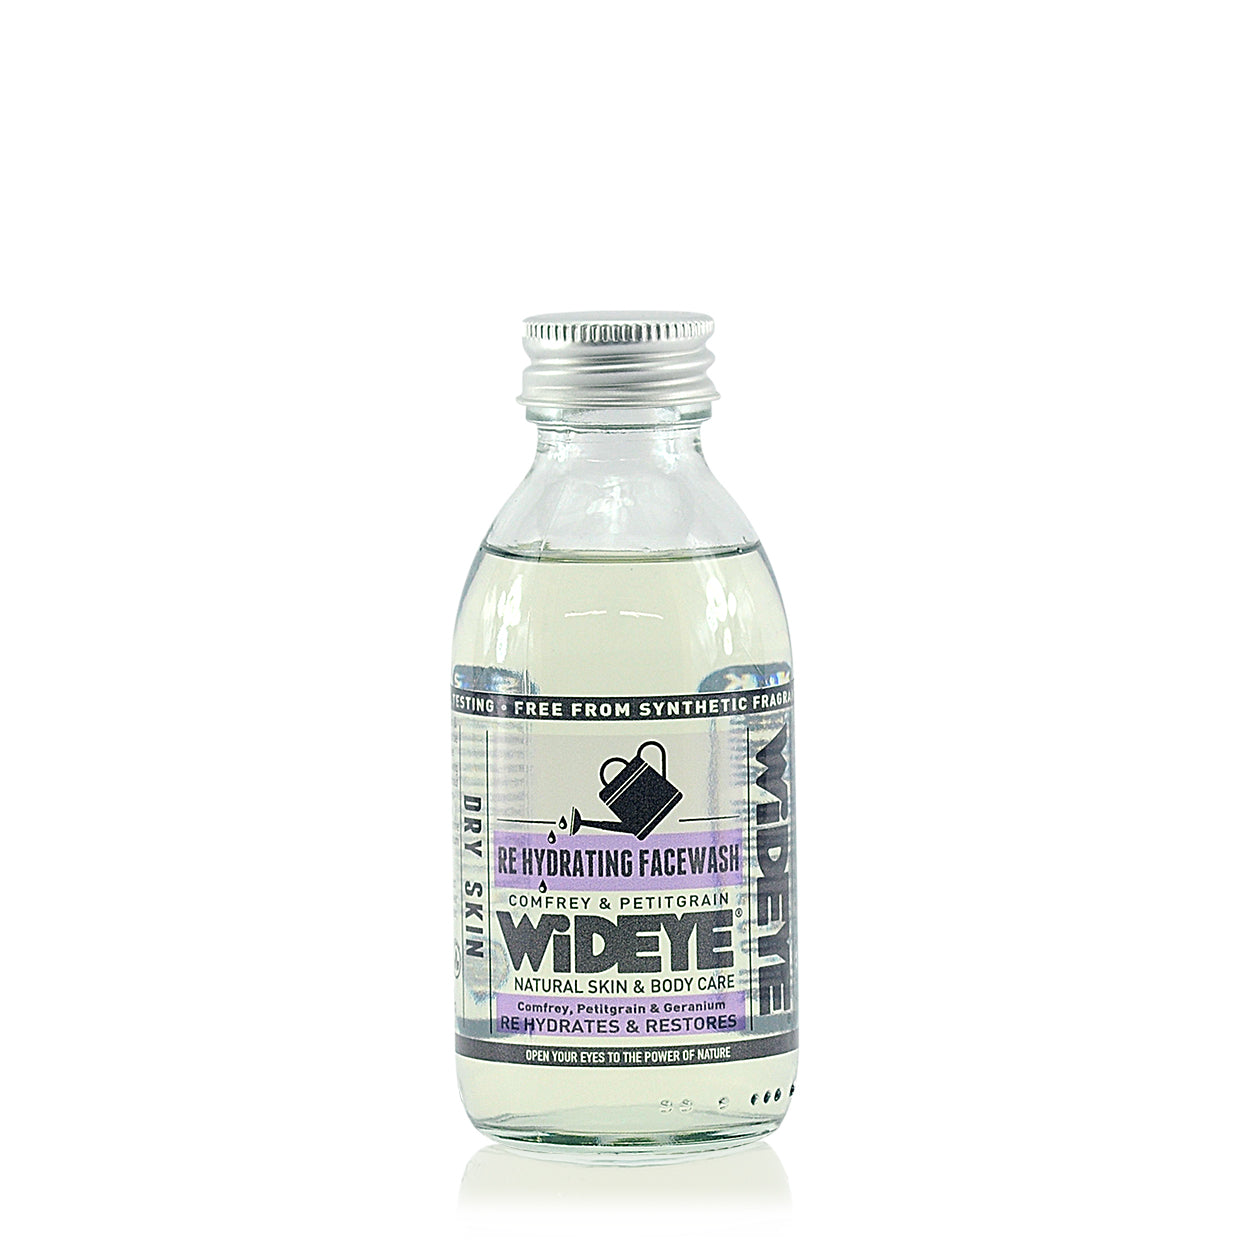 Re Hydrating face wash. Clear face wash in a glass bottle with a purple label and an aluminium top.